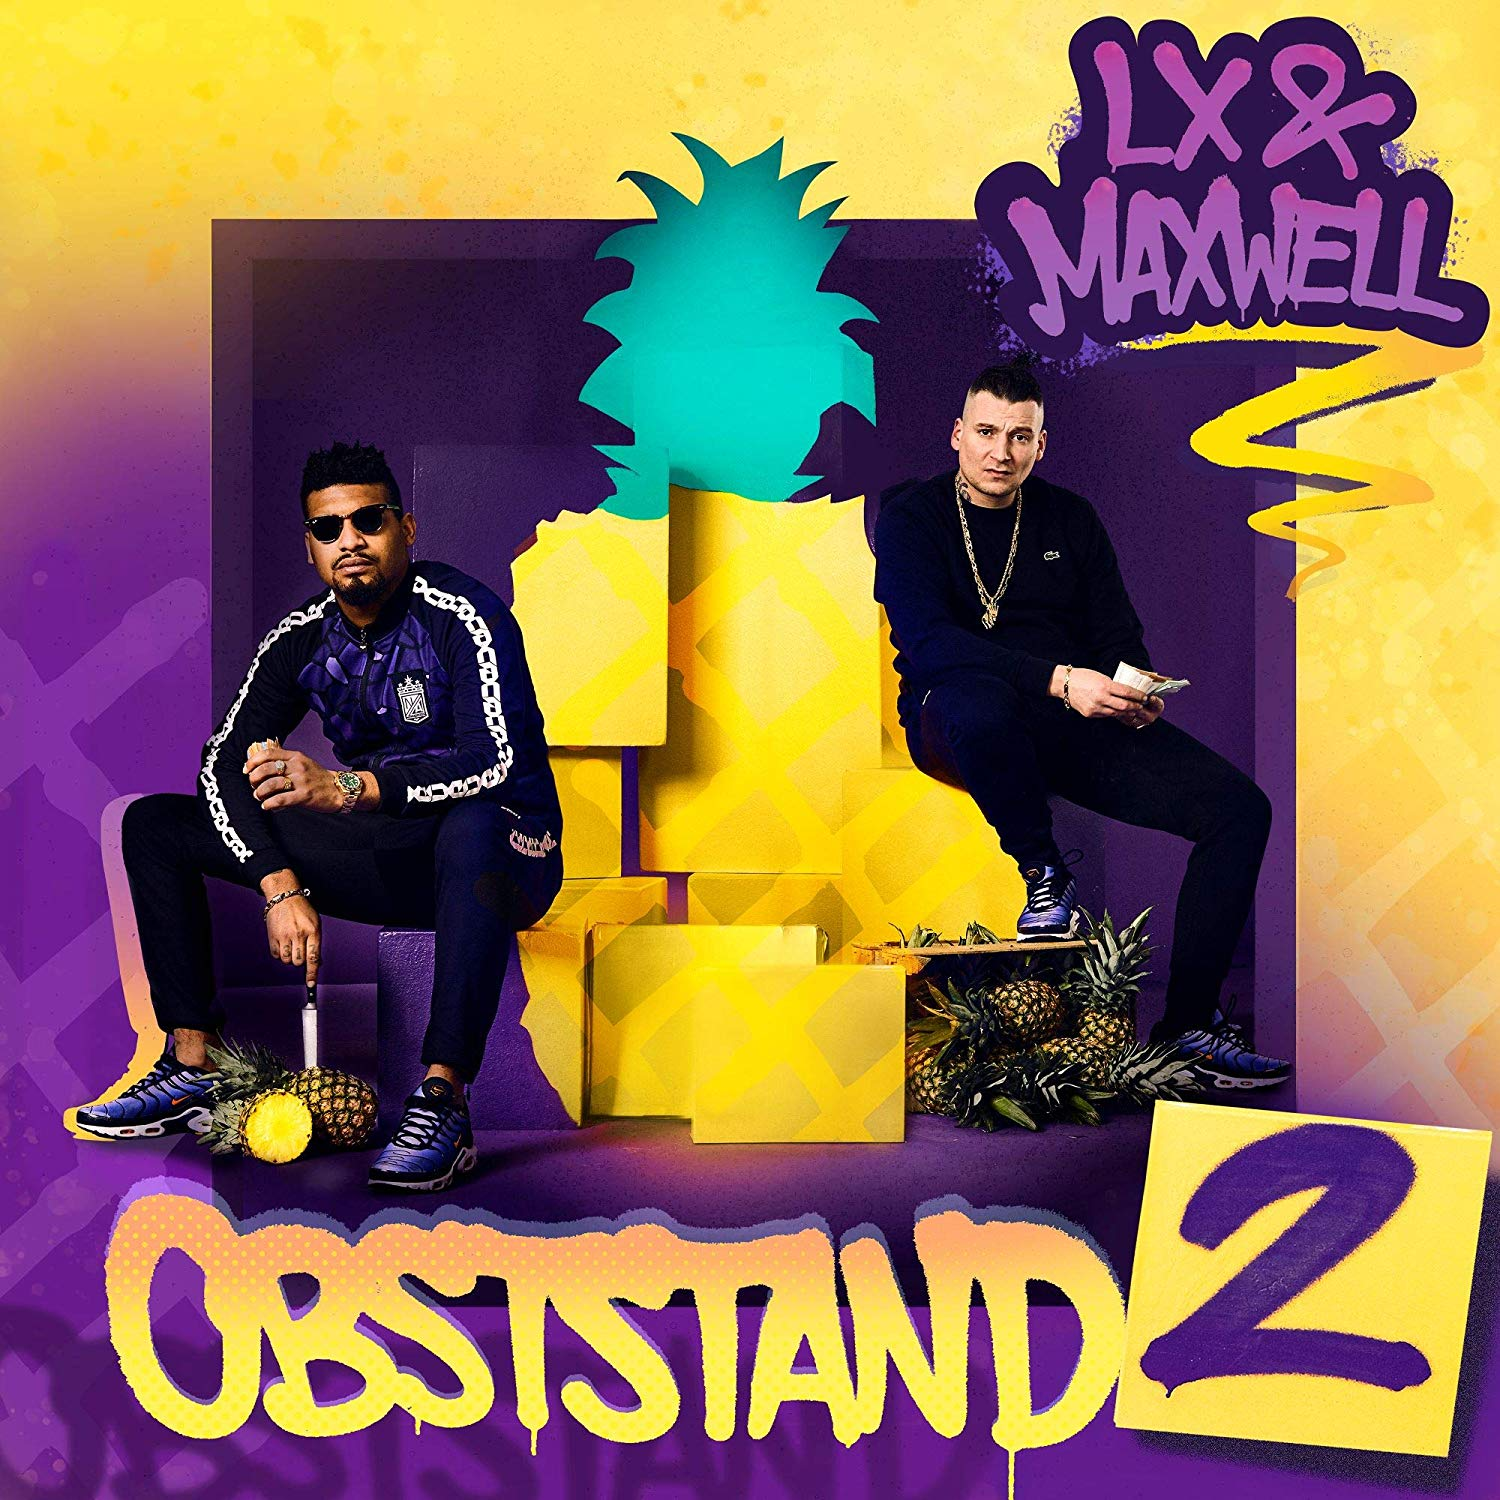 LX & Maxwell - Obststand 2 (28.06.19)